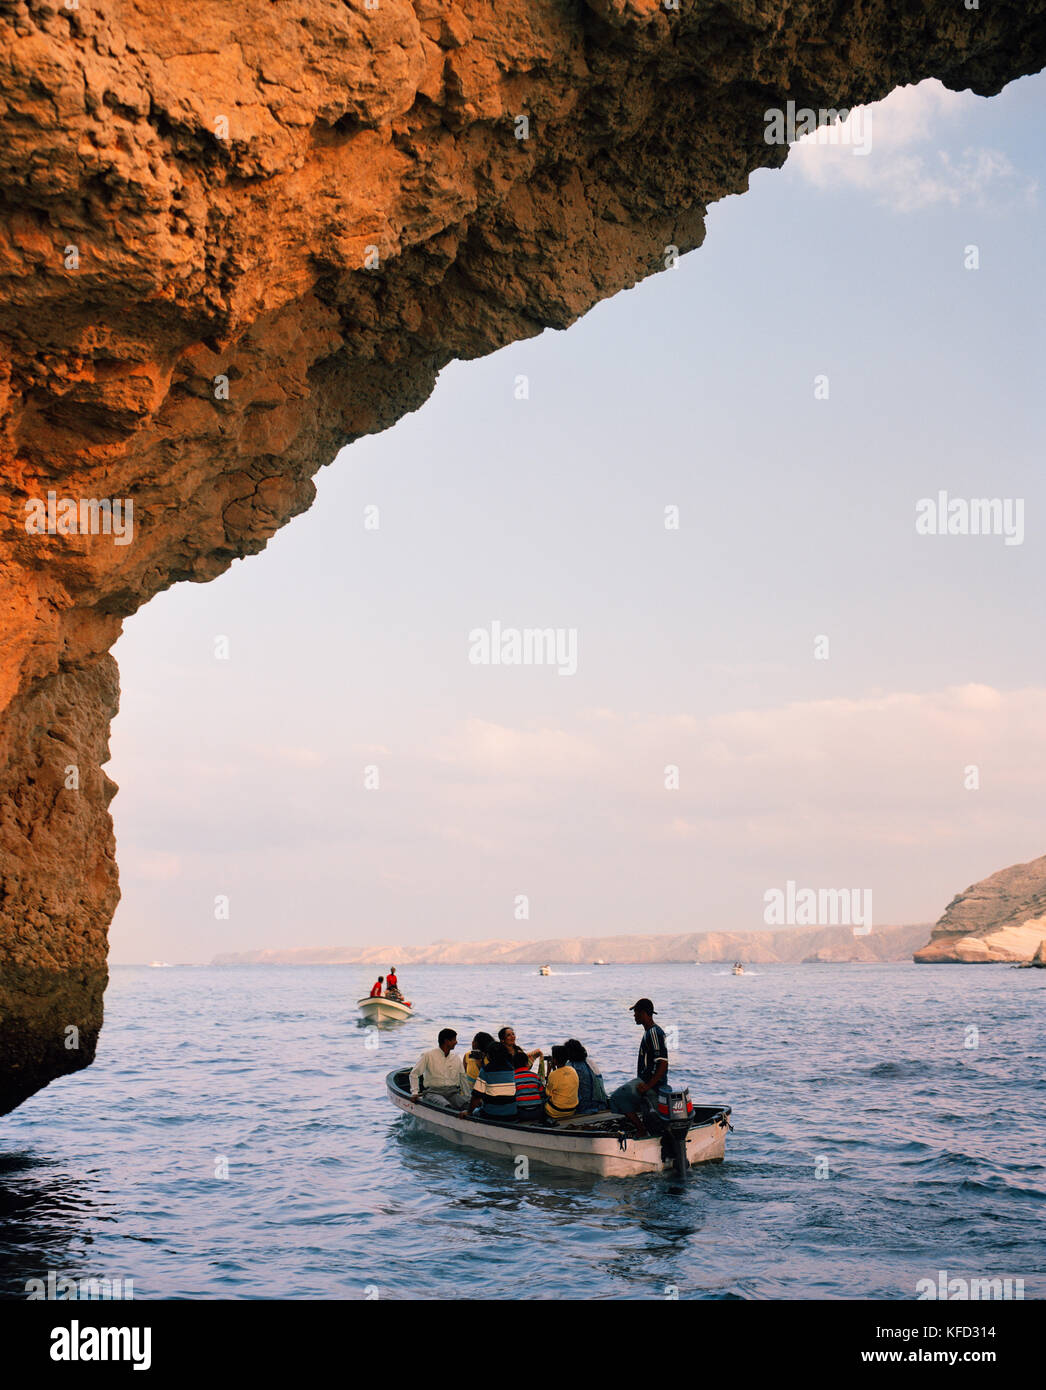 OMAN, Muscat, people traveling on boats in Gulf of Oman - Stock Image